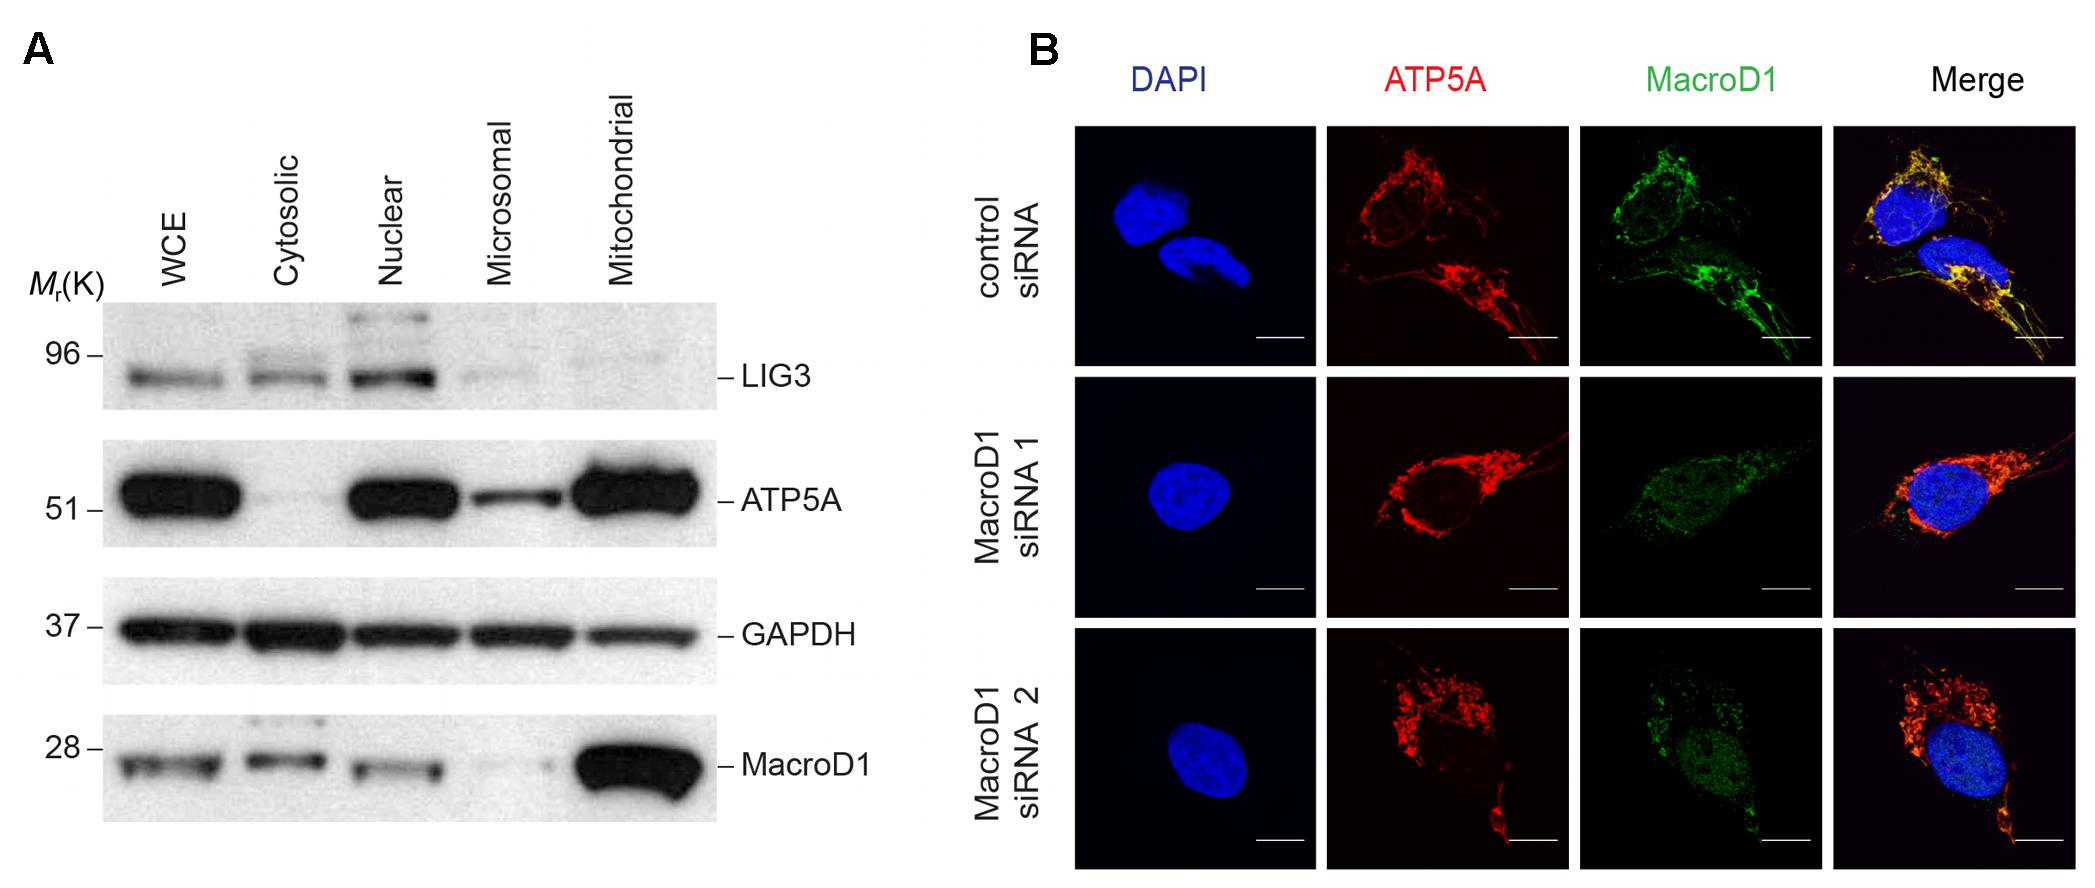 Frontiers | MacroD1 Is a Promiscuous ADP-Ribosyl Hydrolase Localized to Mitochondria | Microbiology